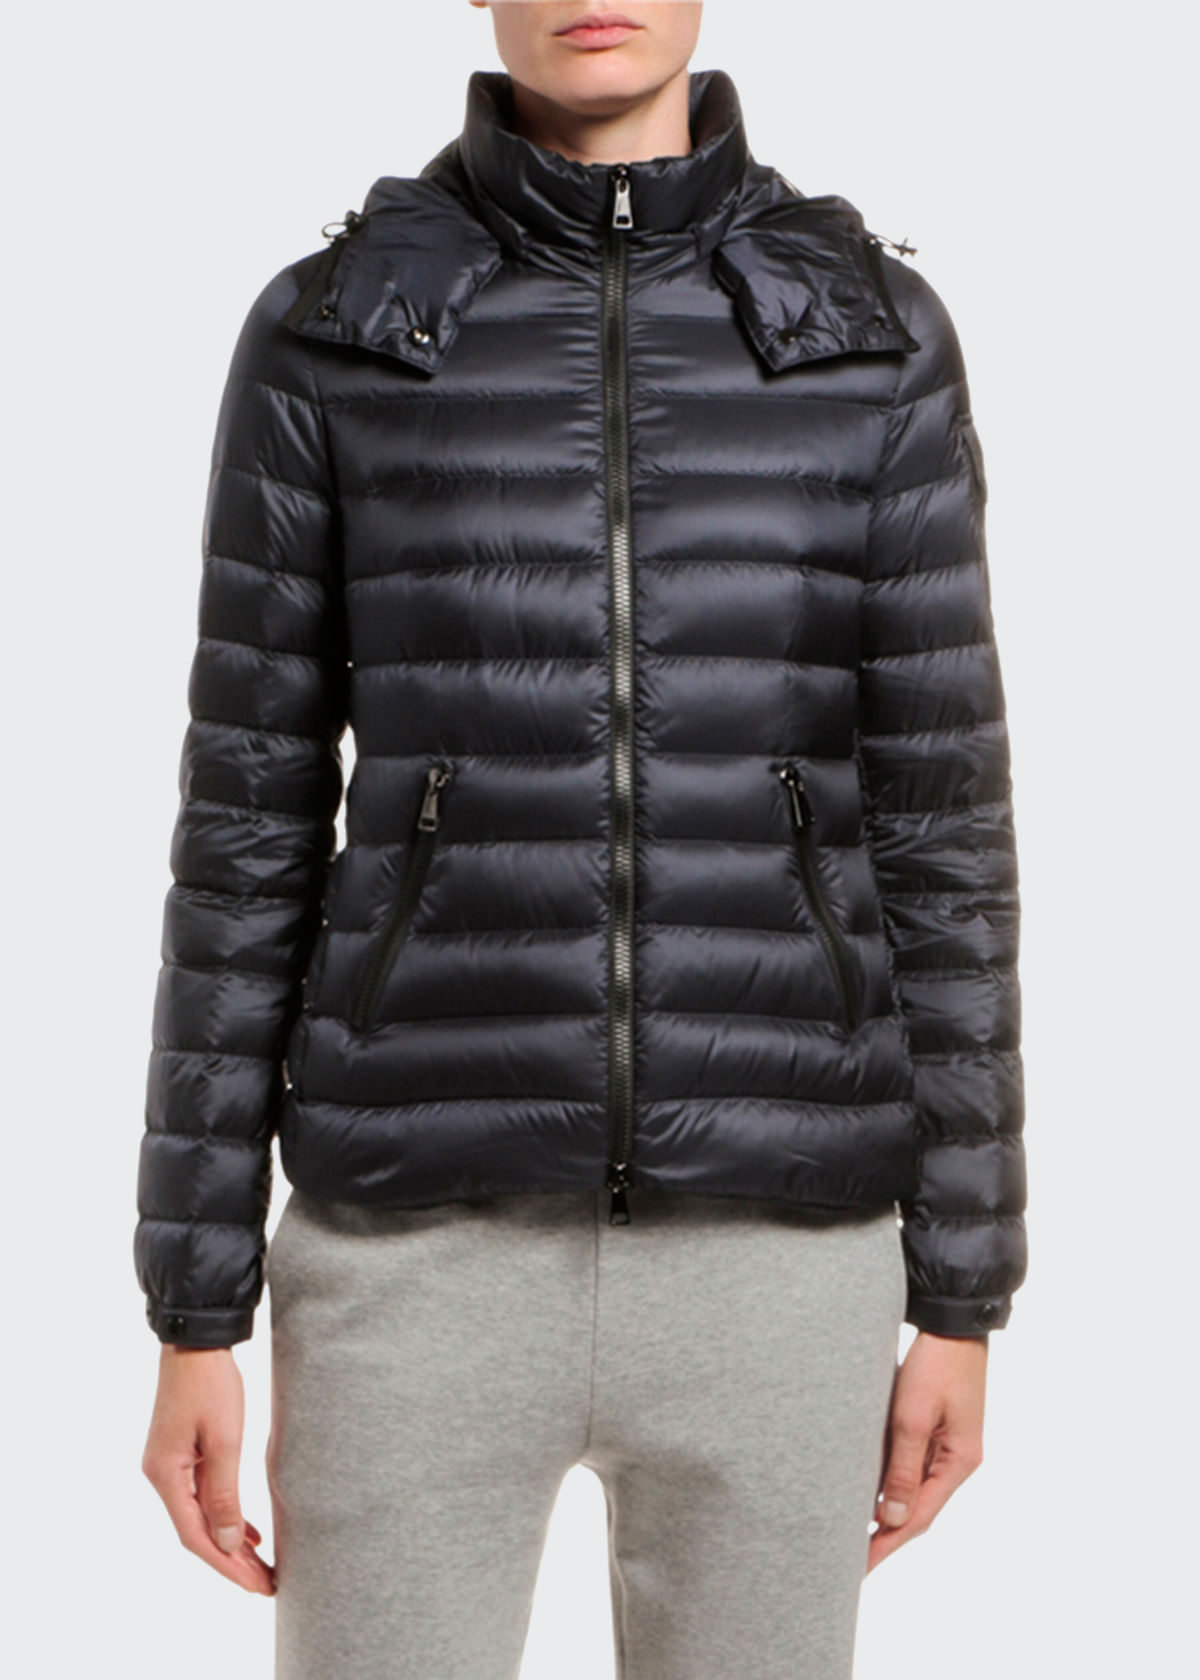 MONCLER BLEU FITTED PUFFER COAT W/ DETACHABLE HOOD